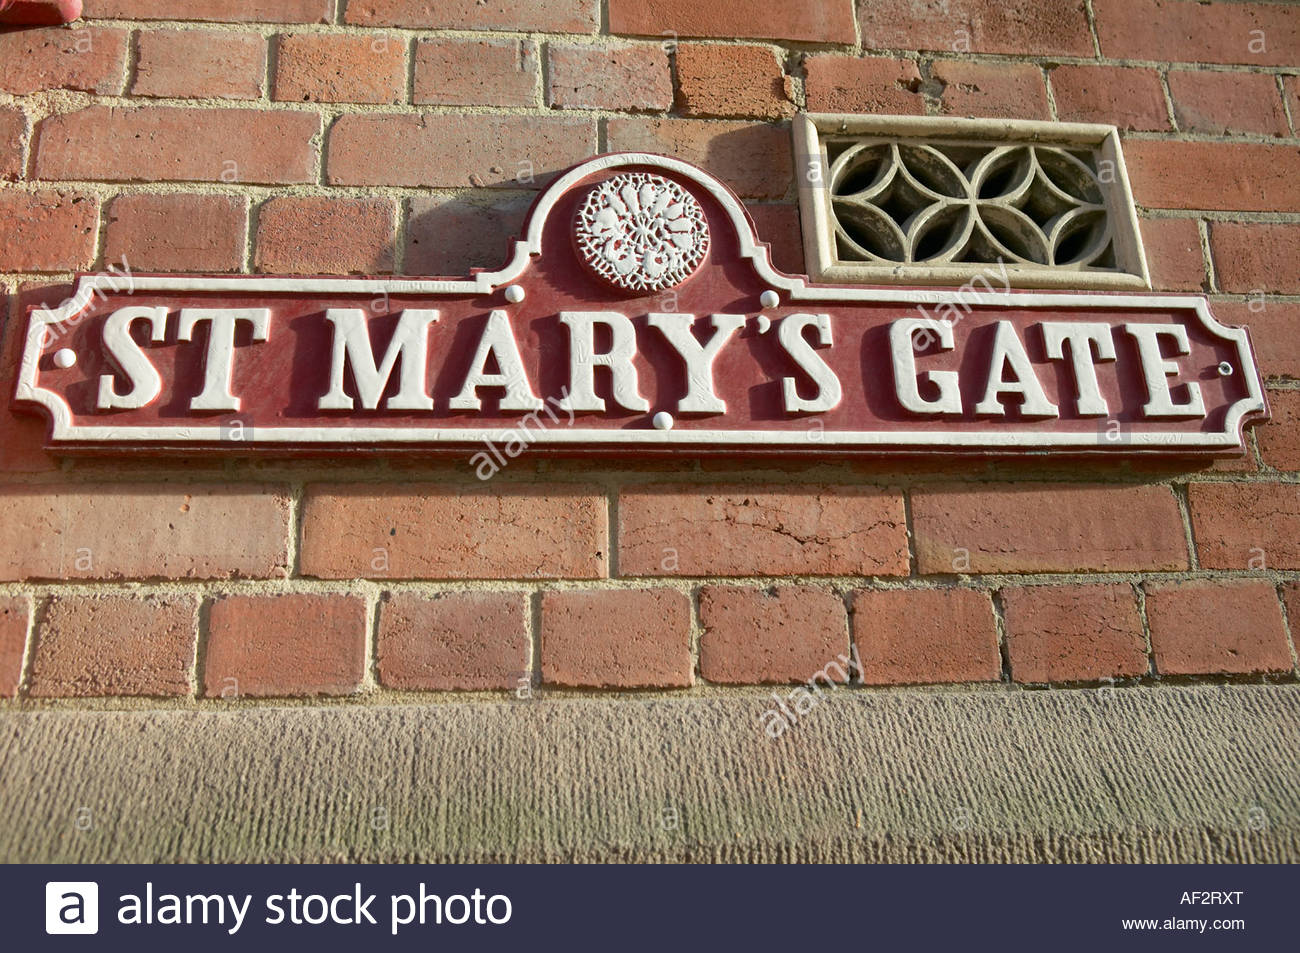 St Mary s Gate traditional cast iron street sign on wall Lace Market Nottingham - Stock Image